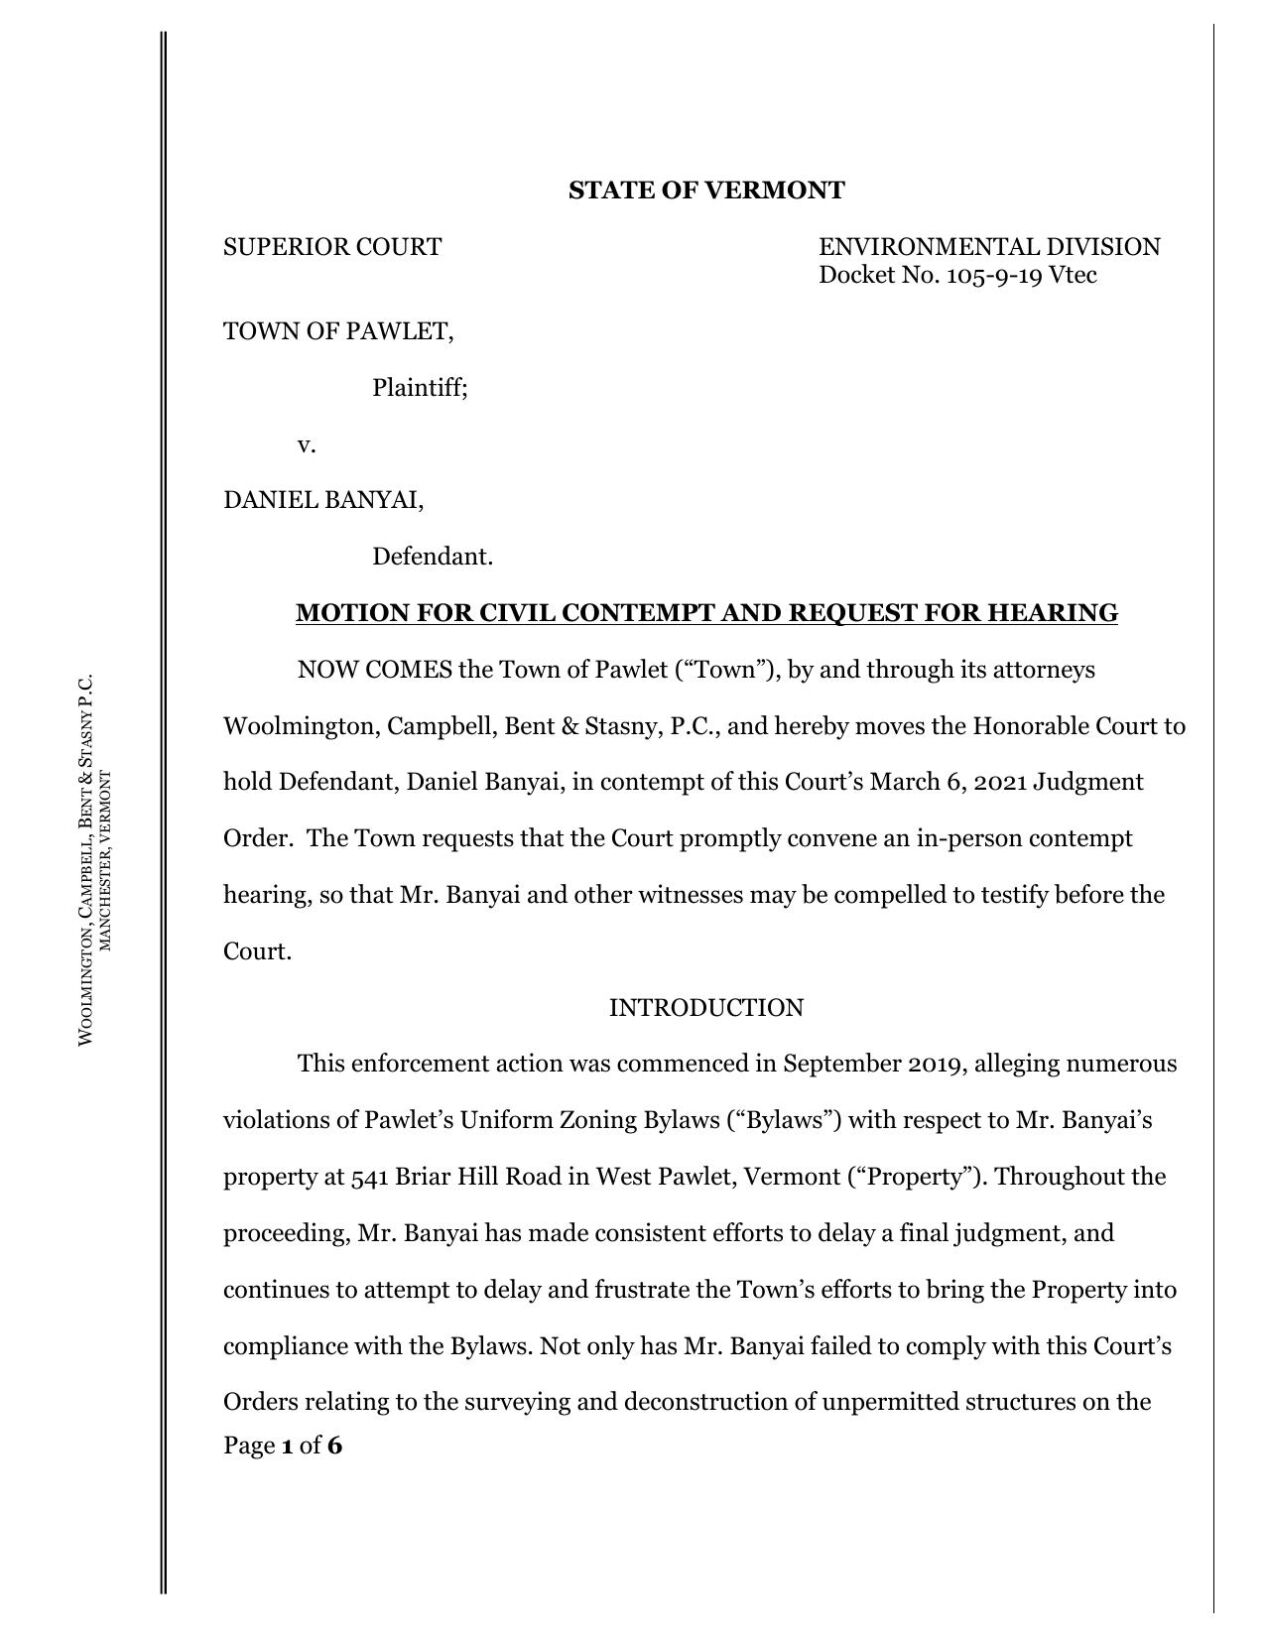 2021-4-20 - Motion for Contempt as efiled.pdf